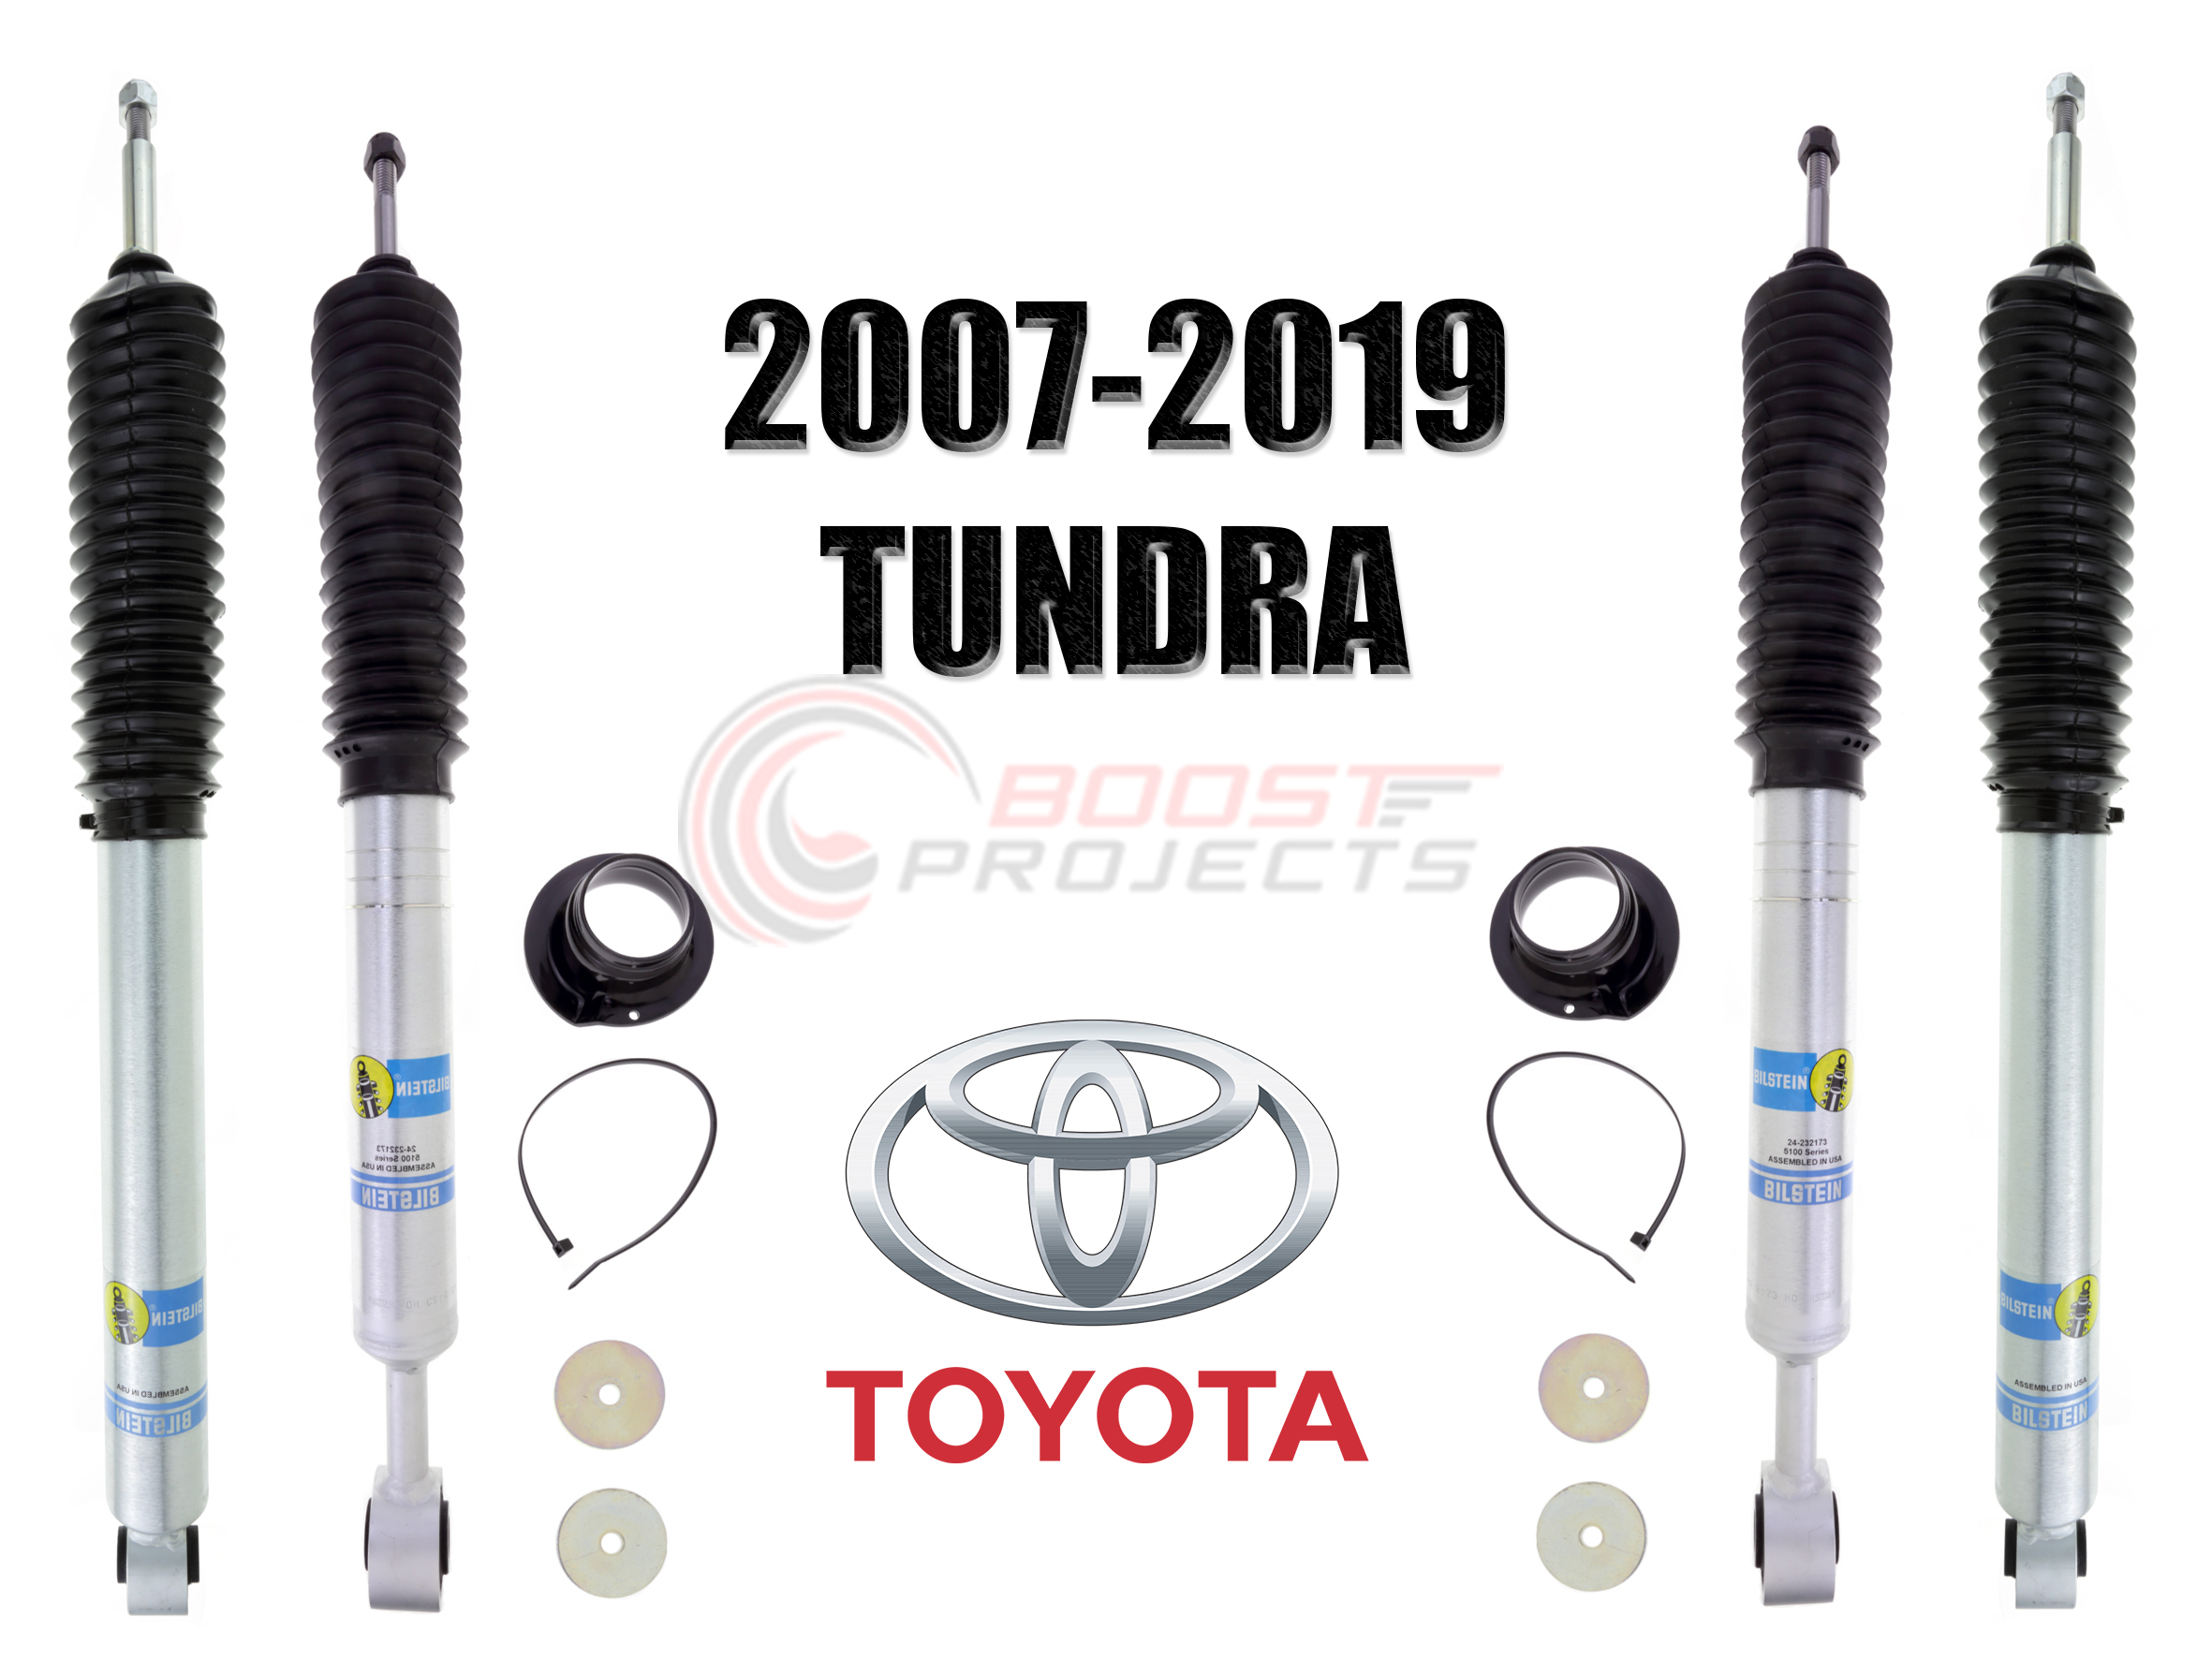 Bilstein B8 5100 Series 2 Rear Shocks Kit for 13 Toyota Tundra 0-1 inch lift Ride Monotube replacement Gas Charged Shock absorbers part number 24-186971